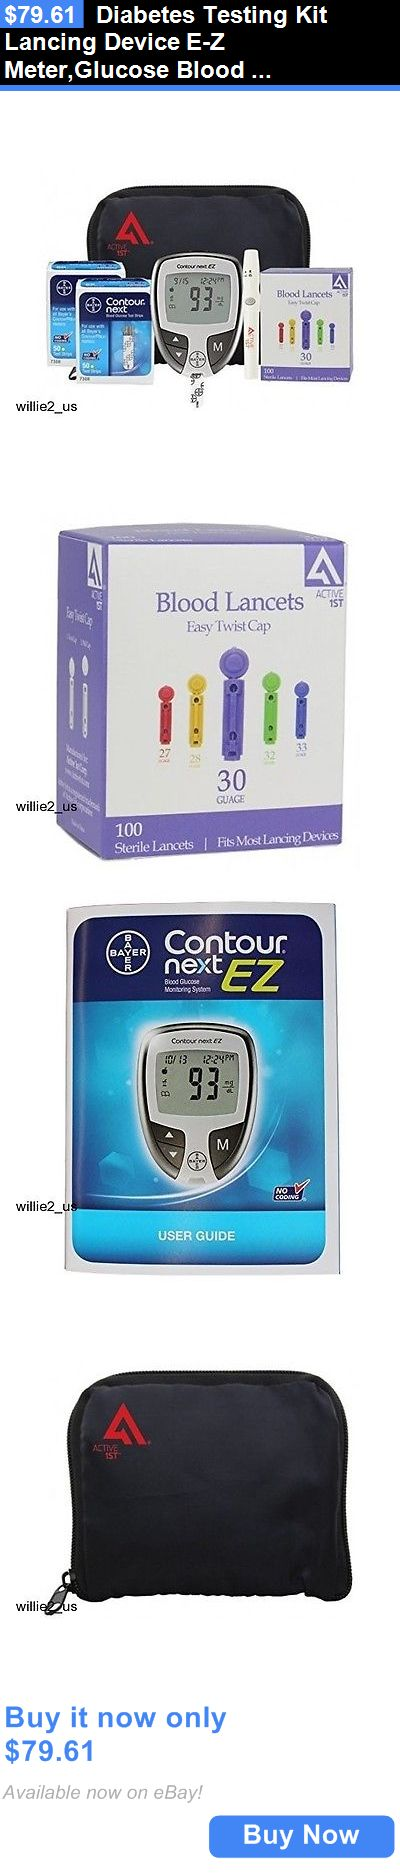 Monitoring Kits: Diabetes Testing Kit Lancing Device E-Z Meter,Glucose Blood Monitor New In Box!! BUY IT NOW ONLY: $79.61